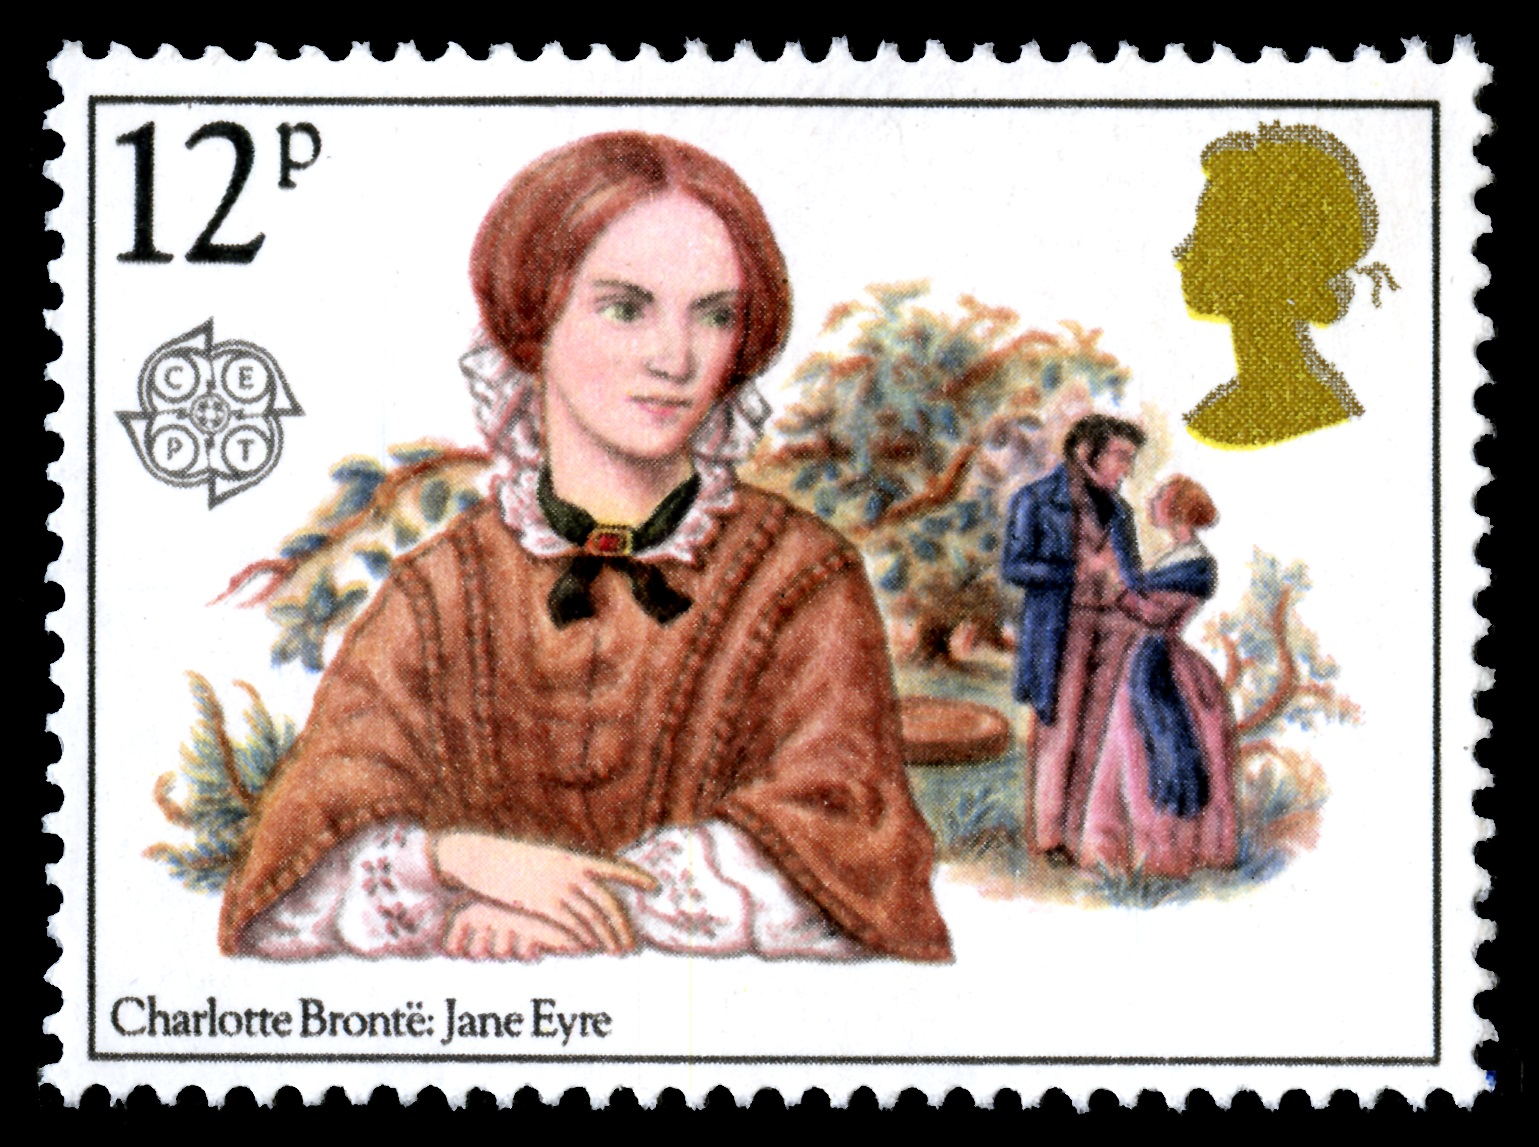 Stamp depicting Charlotte Brontë with an illustration of the novel Jane Eyre in the background. Stamp value of 12 pence.